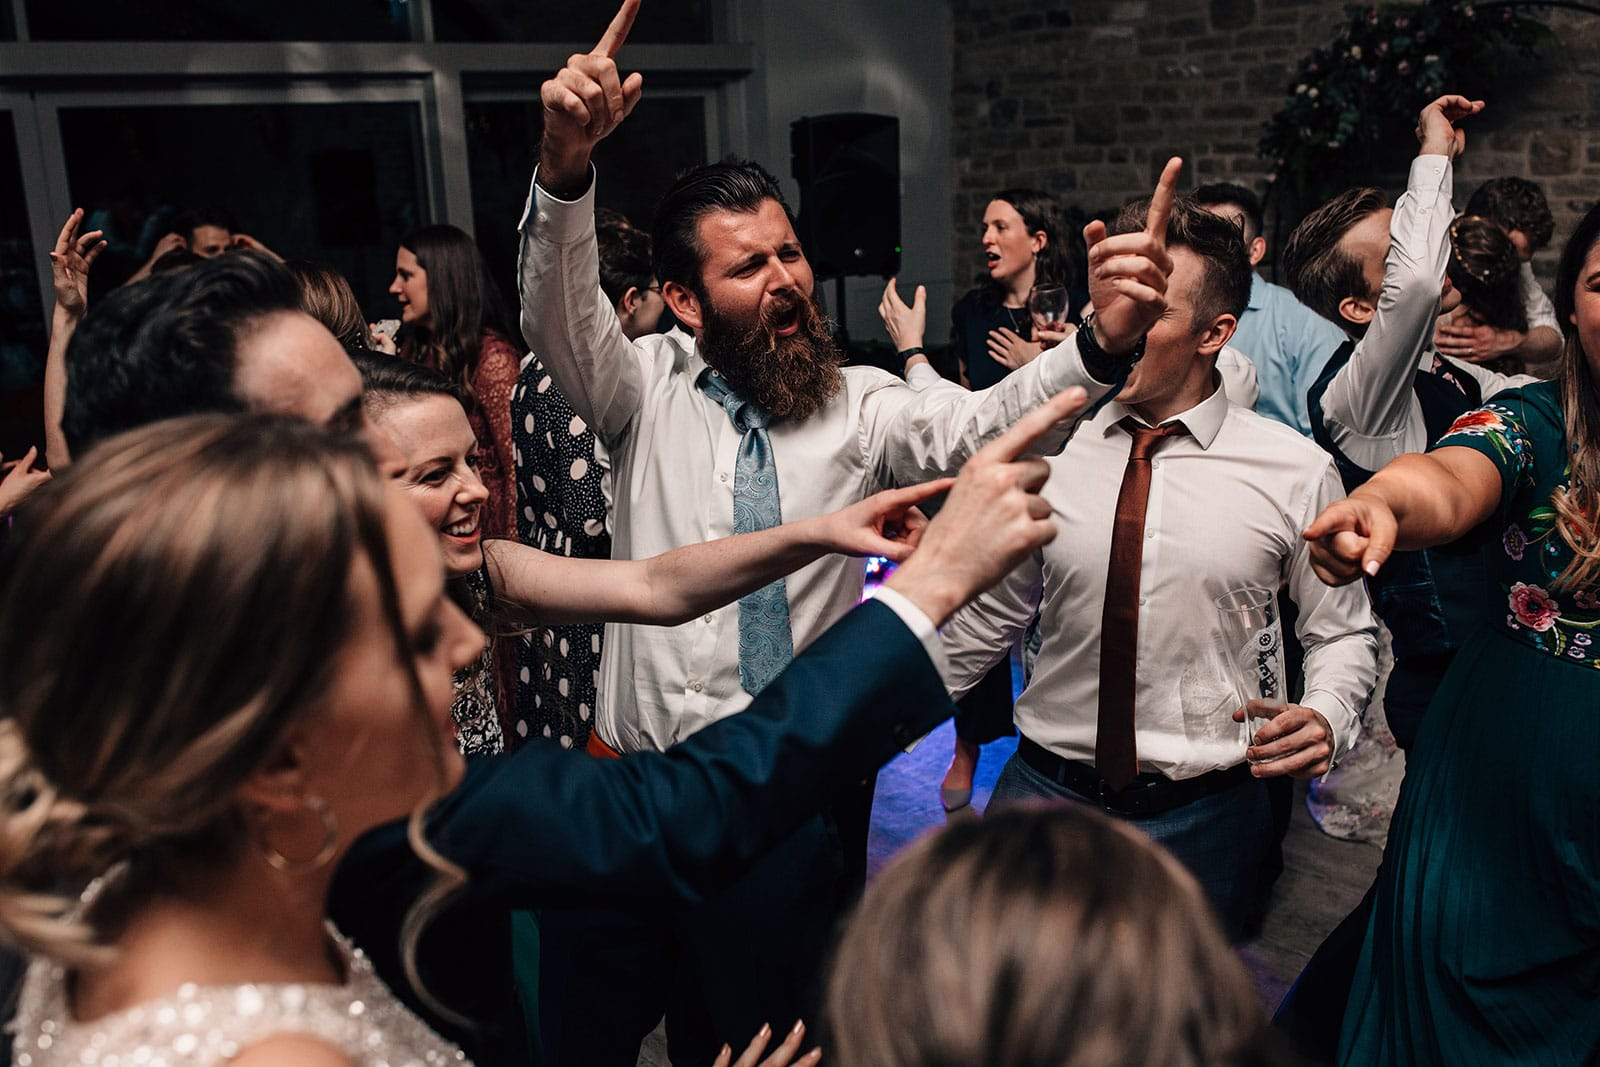 autumnal wedding dance-floor documentary photography